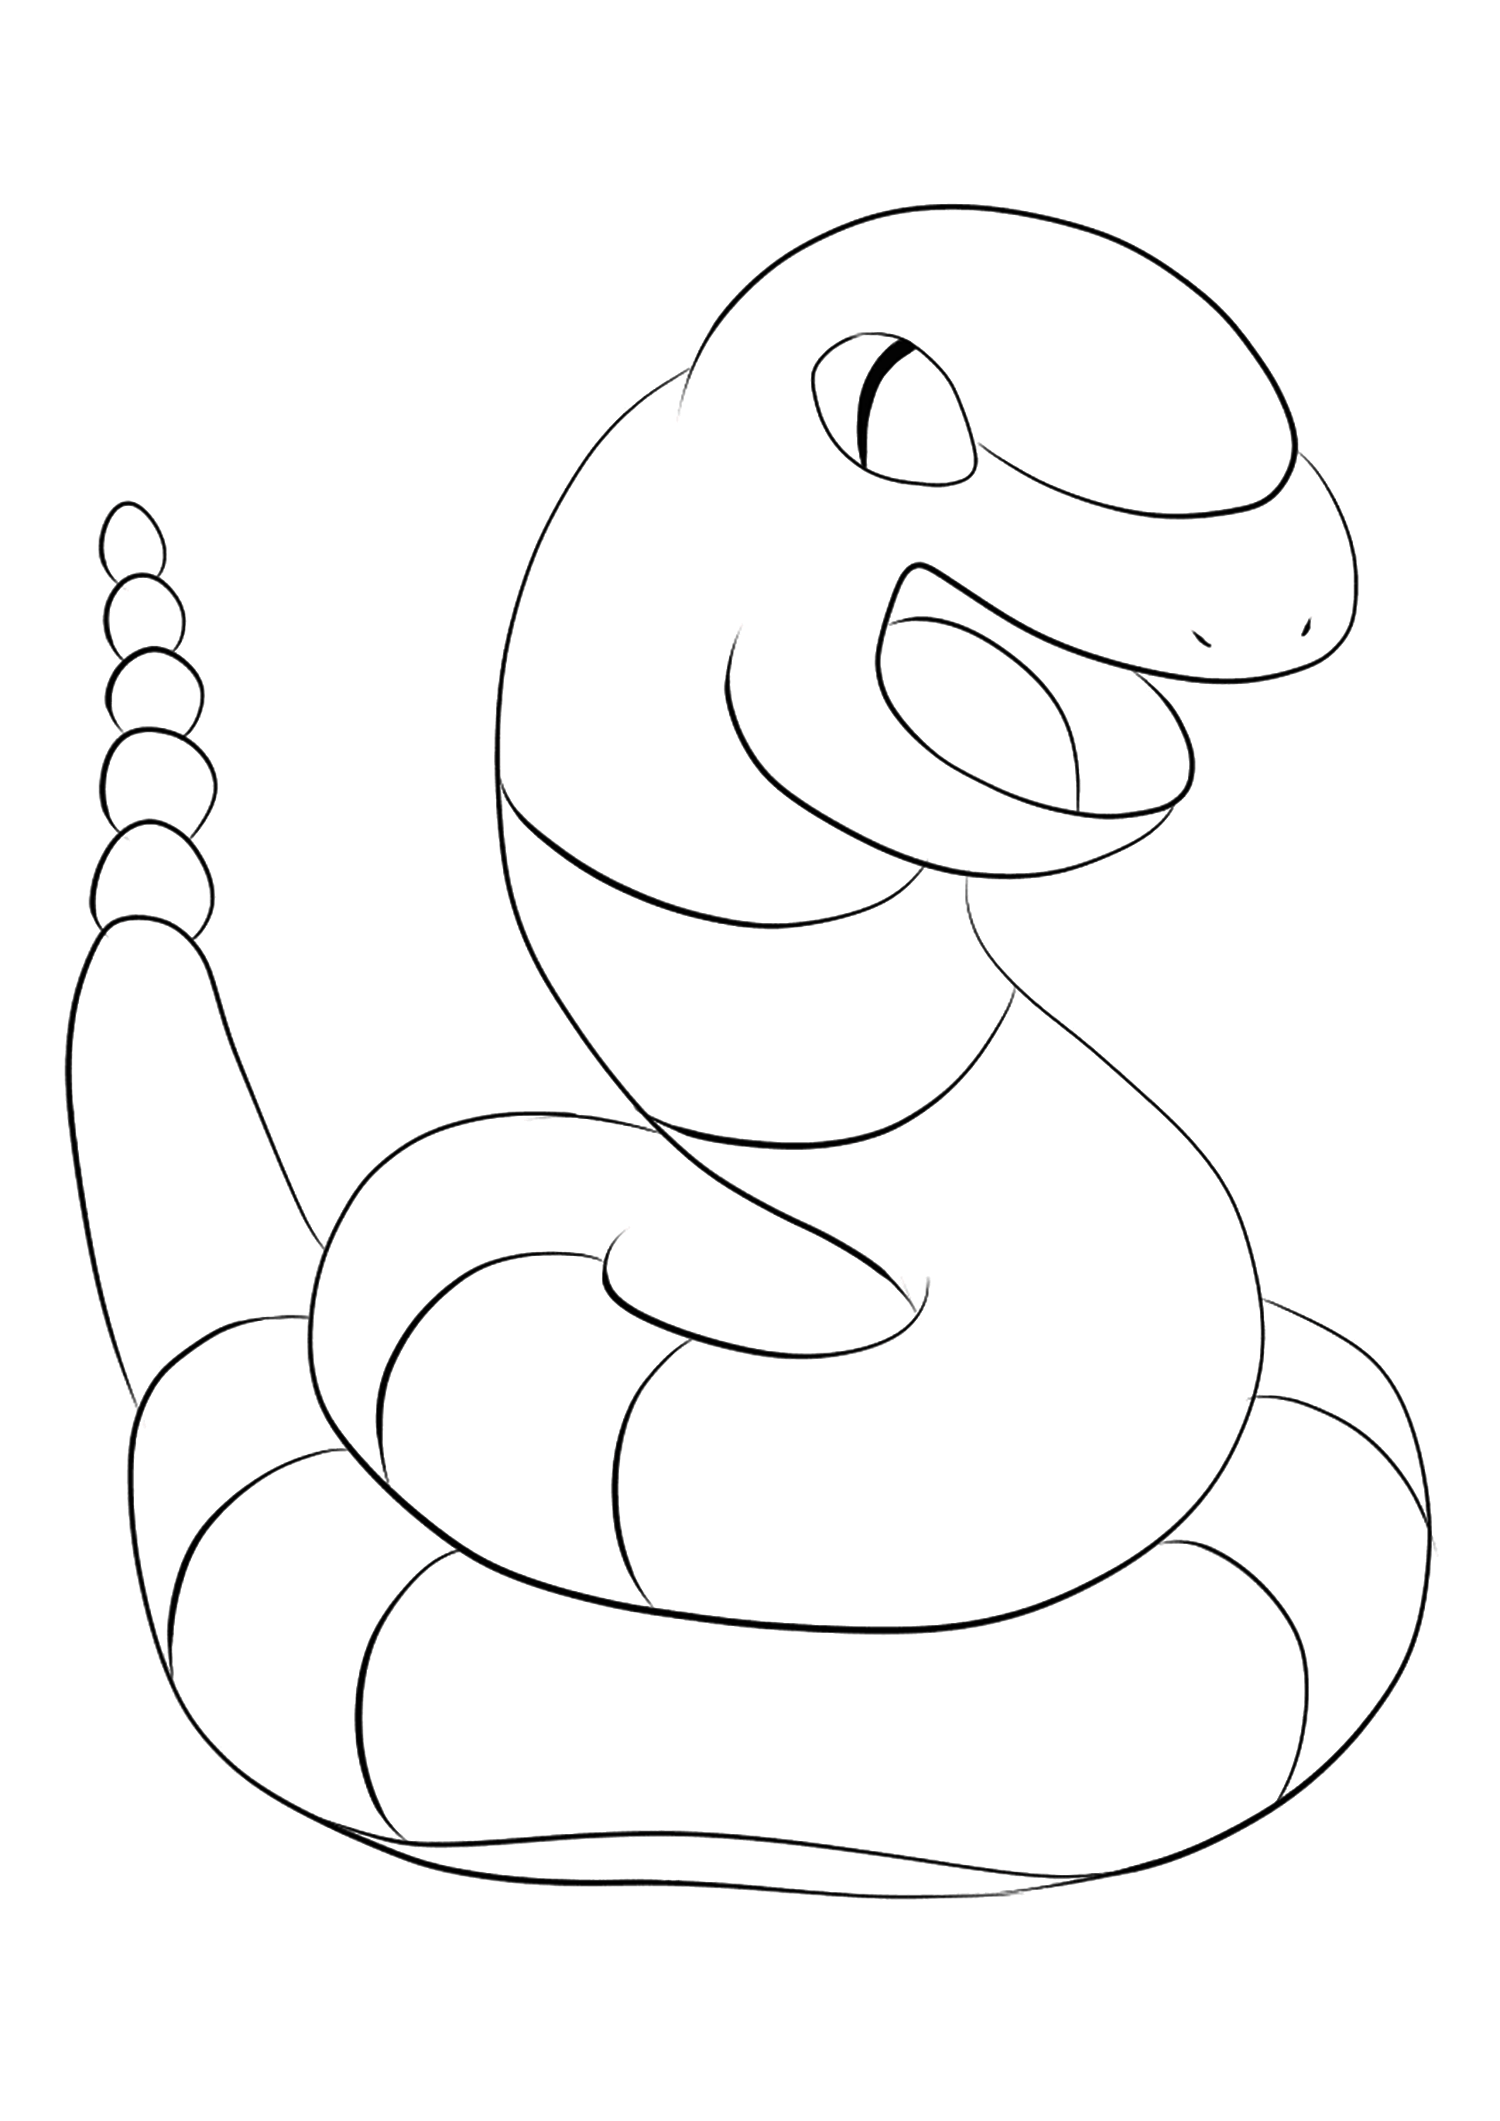 Ekans (No.23)Ekans Coloring page, Generation I Pokemon of type PoisonOriginal image credit: Pokemon linearts by Lilly Gerbil'font-size:smaller;color:gray'>Permission: All rights reserved © Pokemon company and Ken Sugimori.